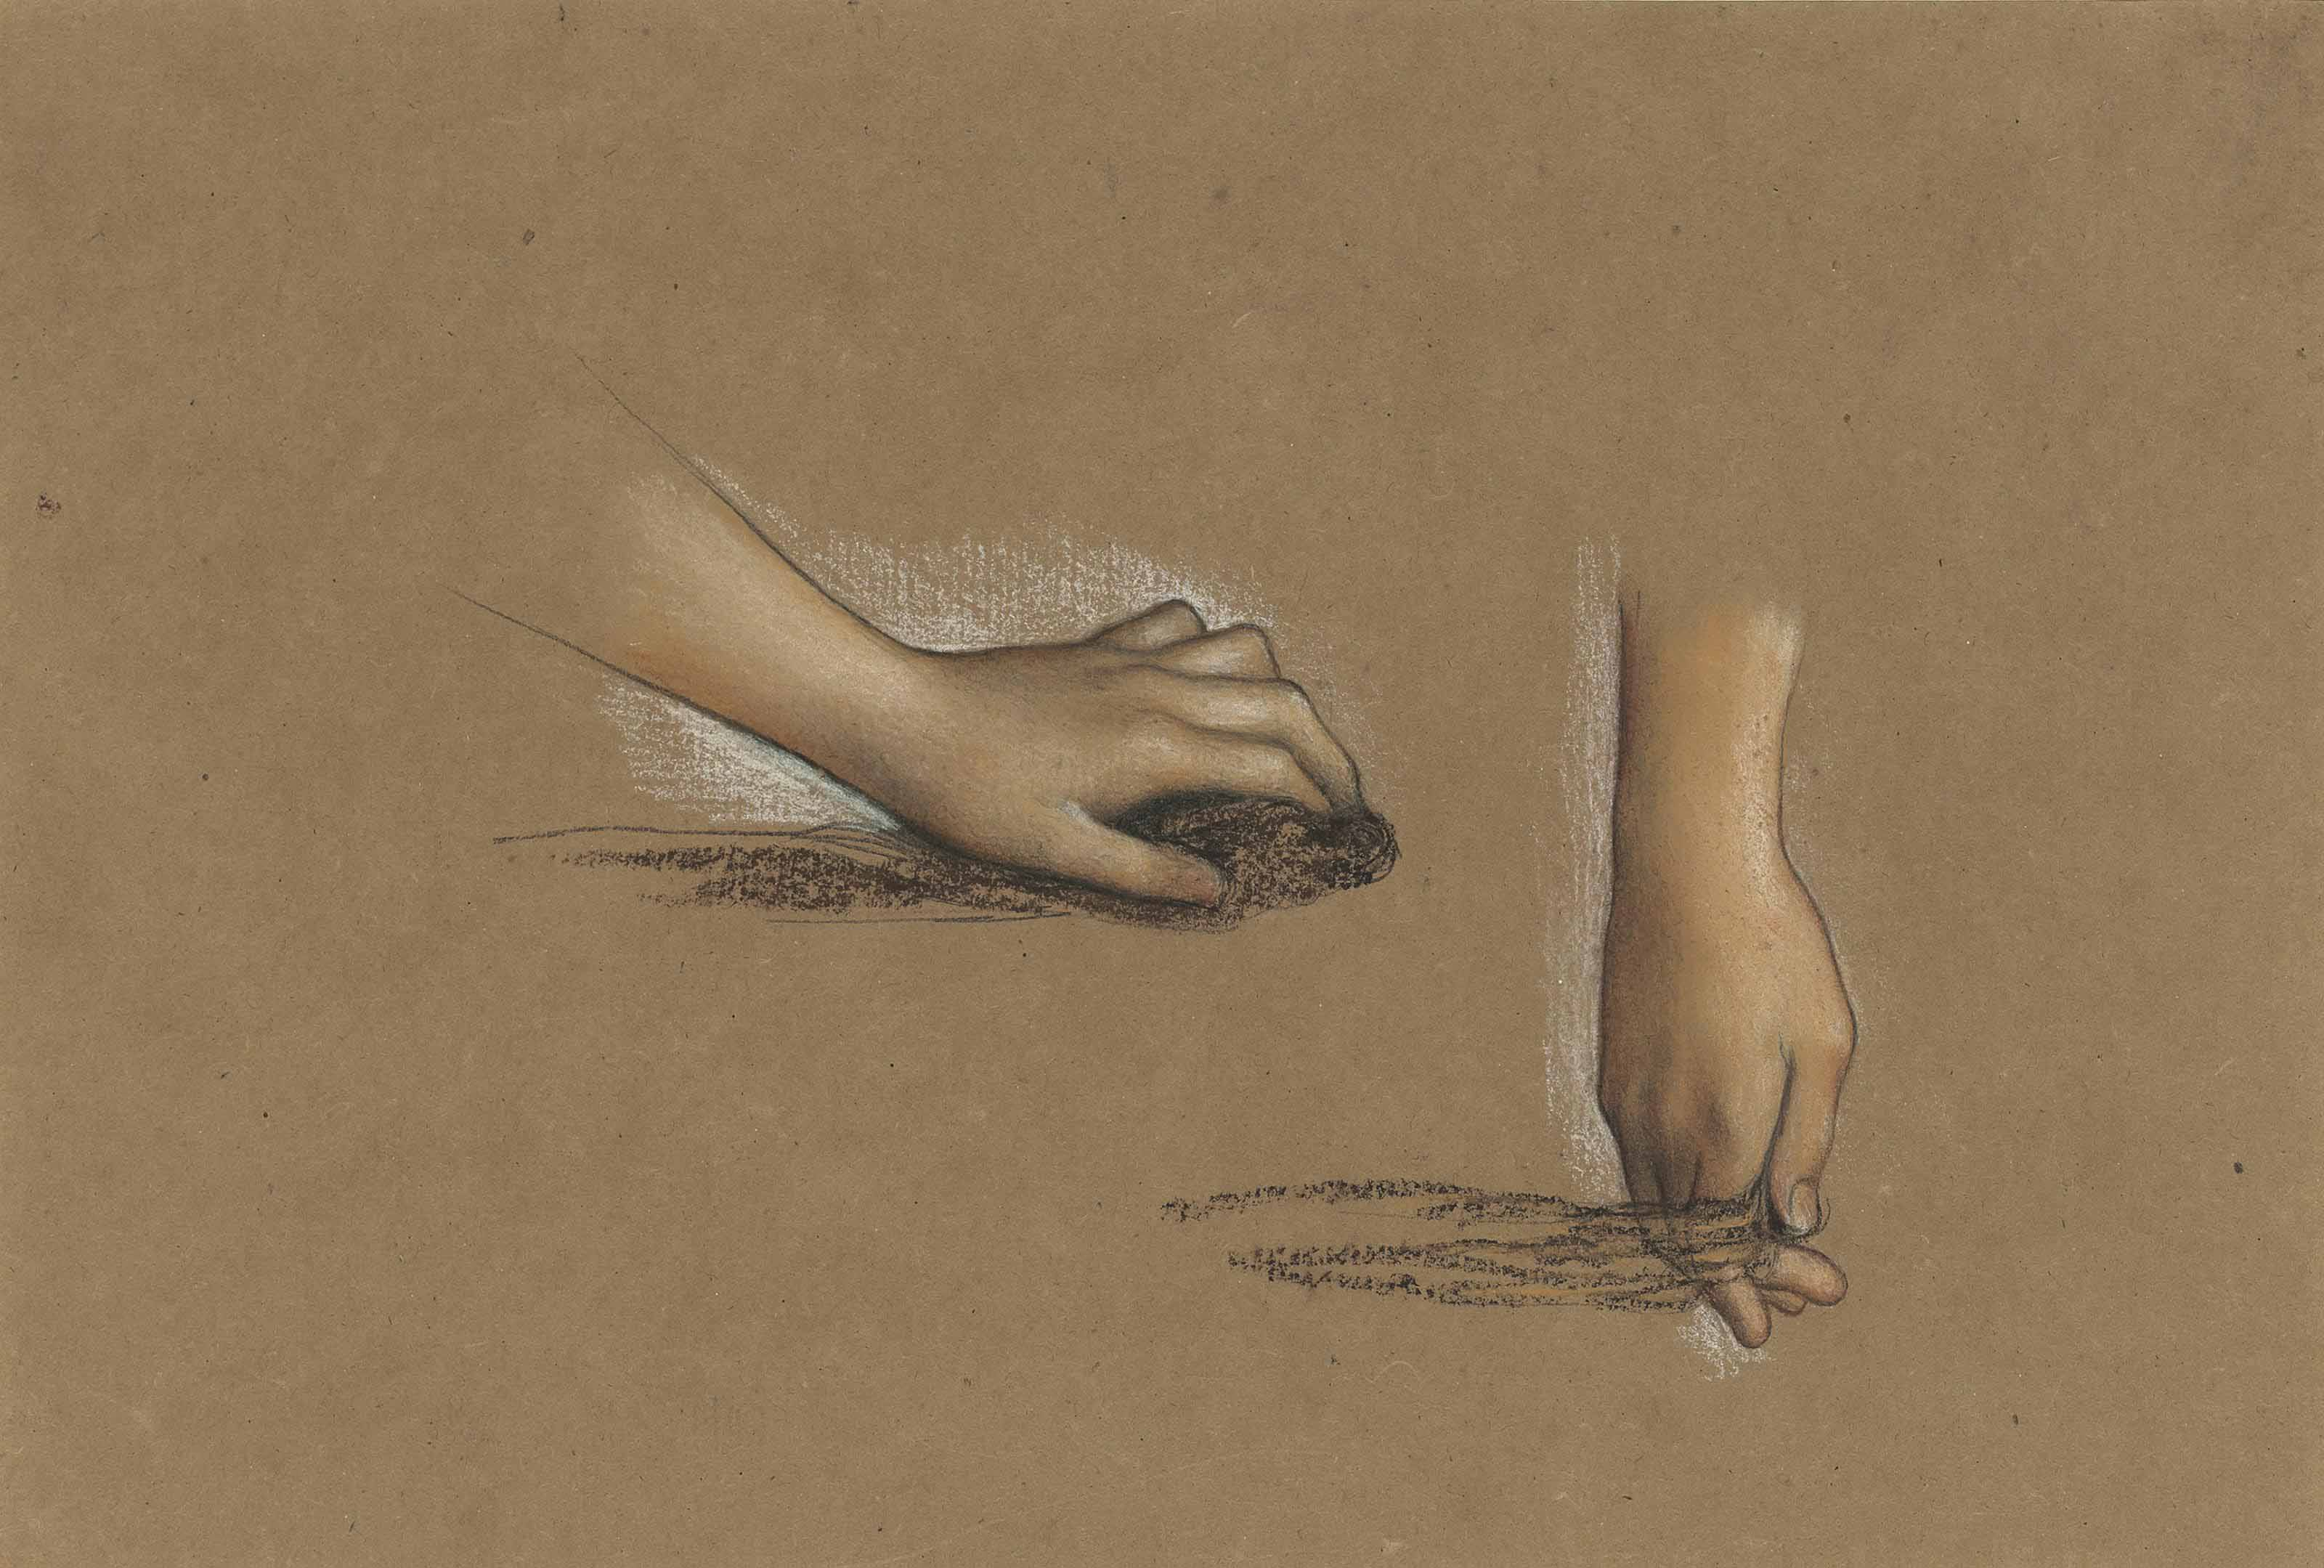 Two studies of hands